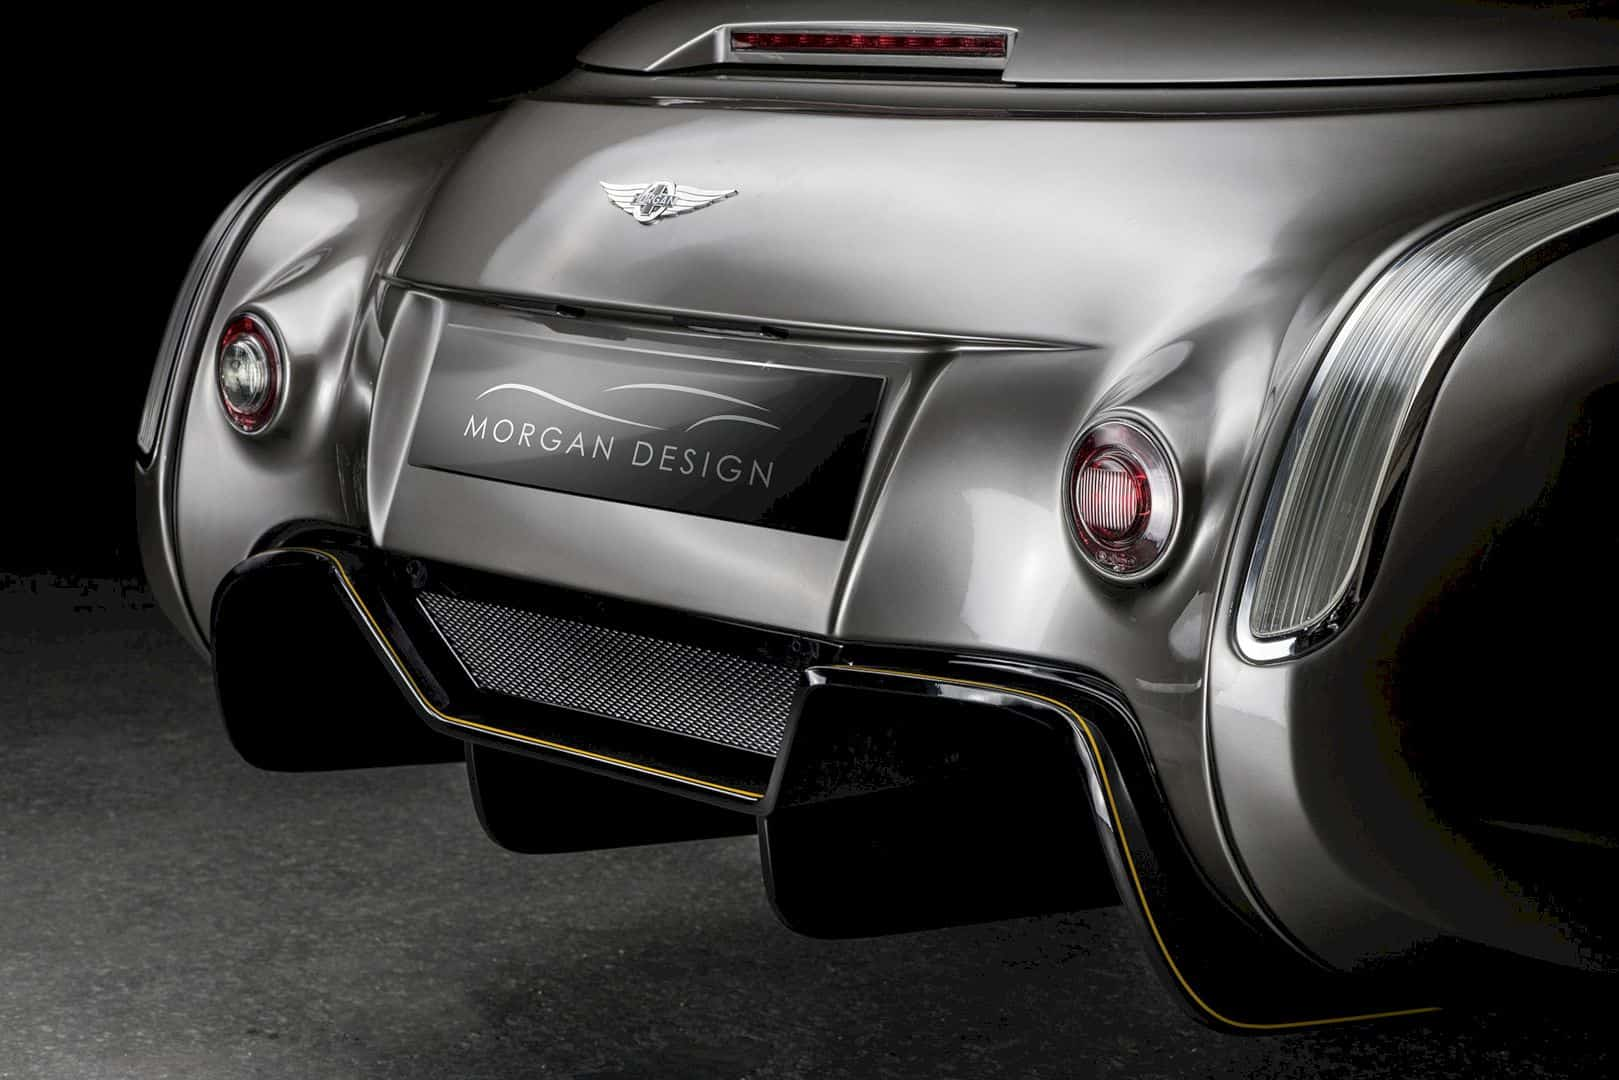 The Morgan Aero Gt 2